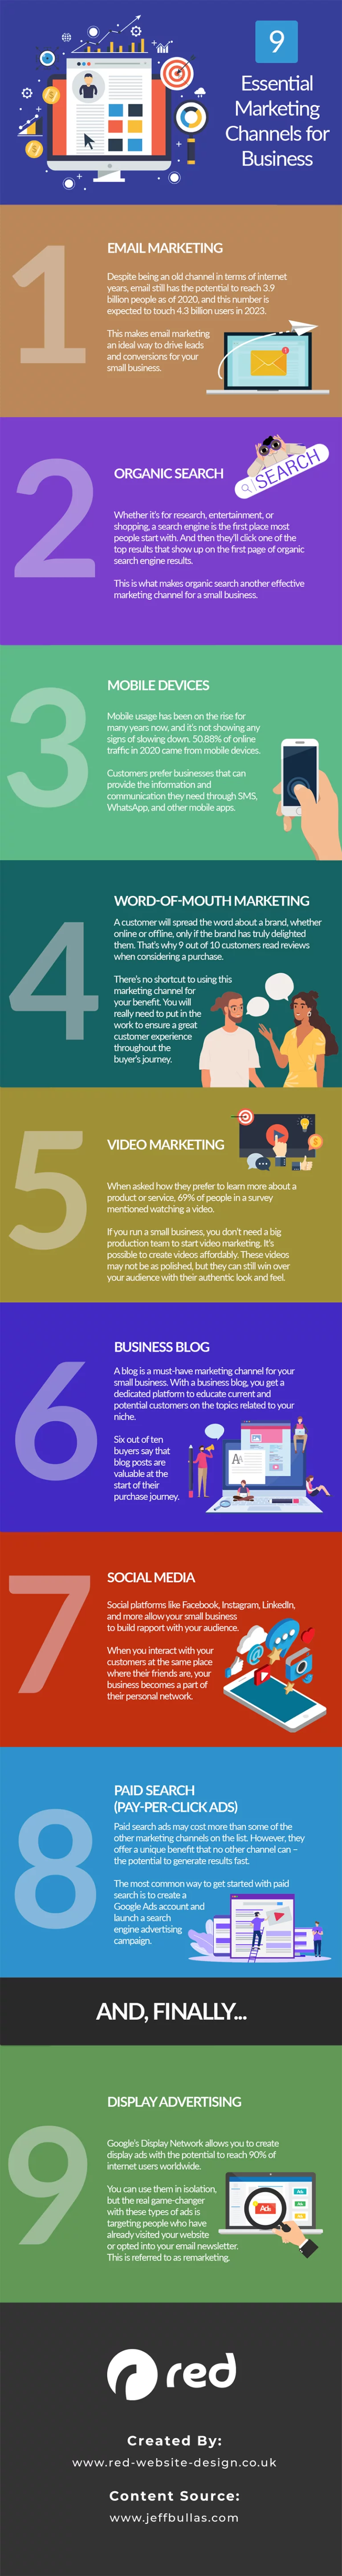 9 marketing channels to use infographic